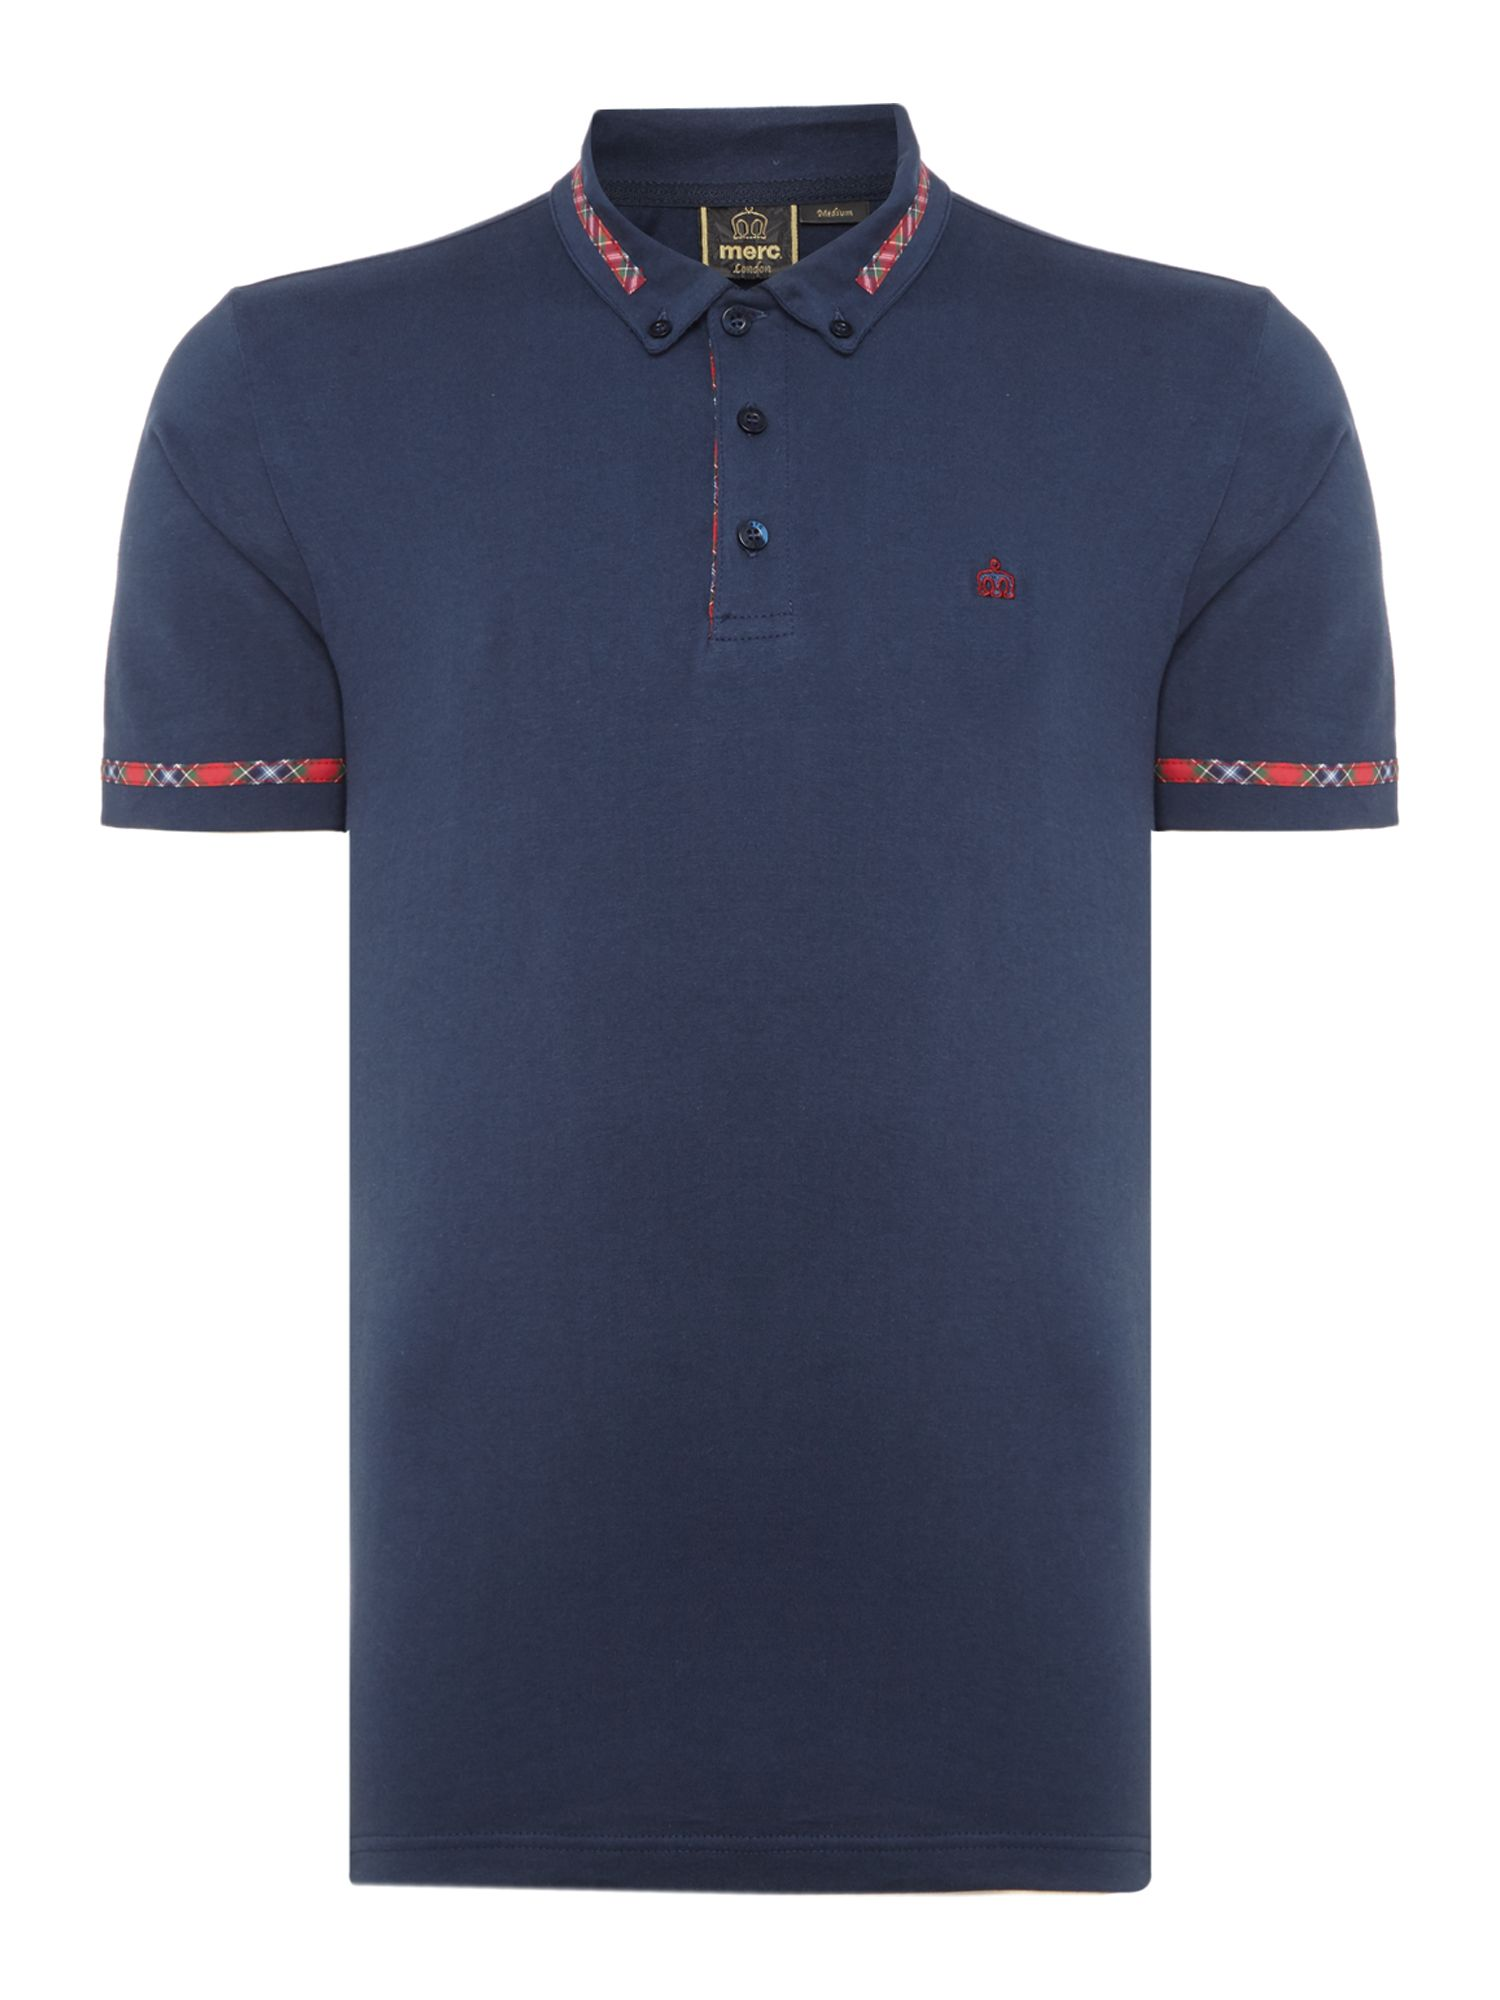 Men's Merc Ridge tartan trim polo short sleeve polo, Blue